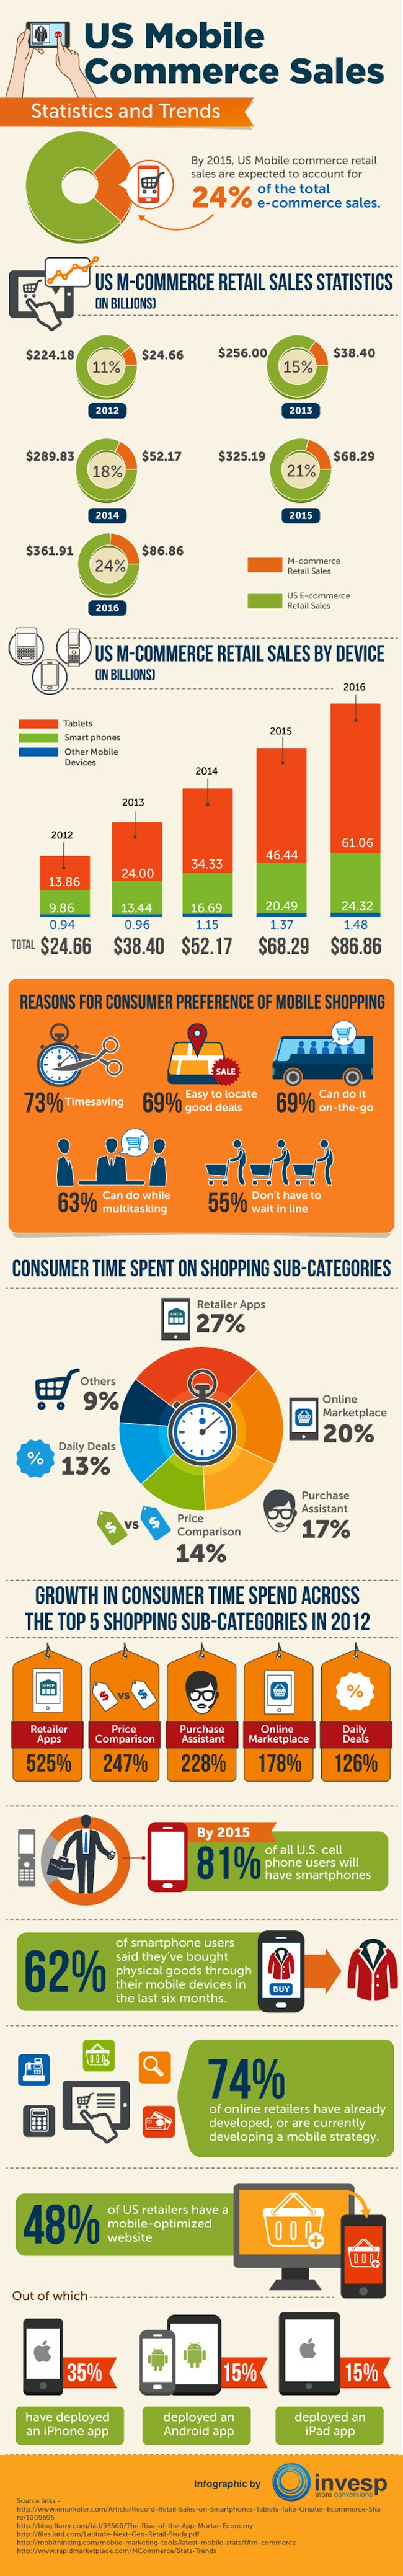 us-mobile-commerce-sales-infographic